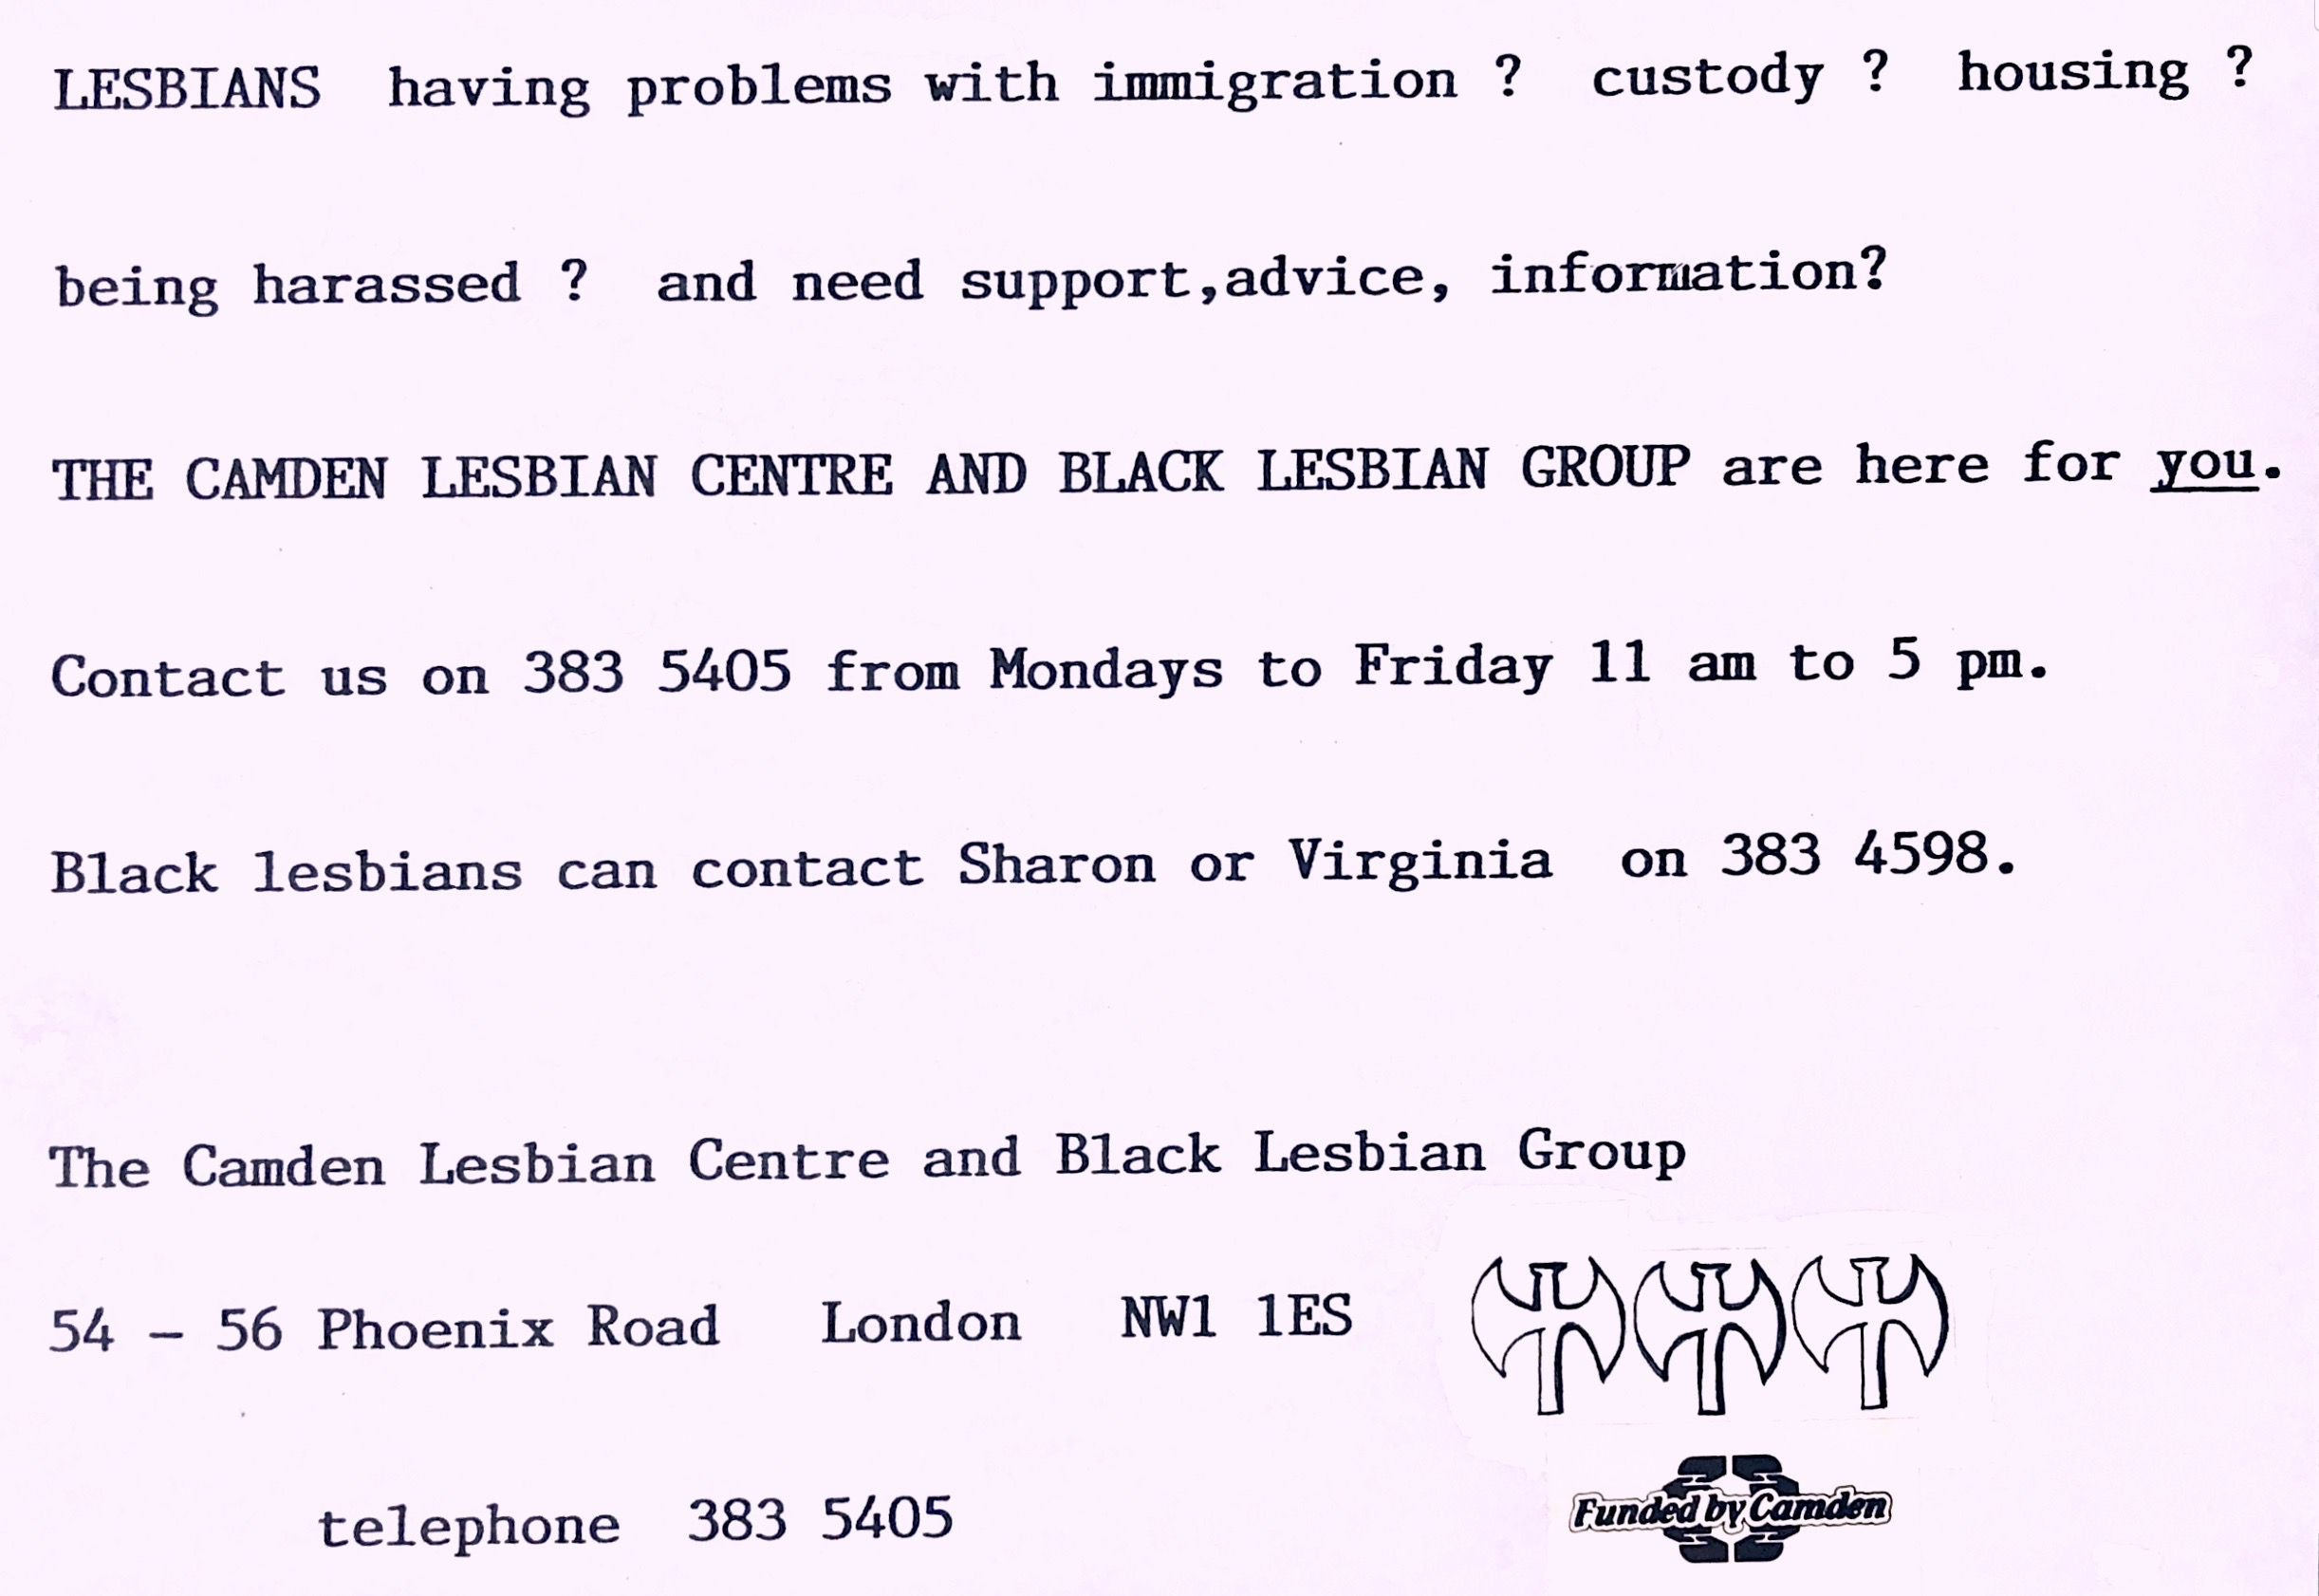 Text-based flyer for Camden Lesbian Centre & Black Lesbian Group, offering advice and support for lesbians with immigration, custody, housing, harassment problems.